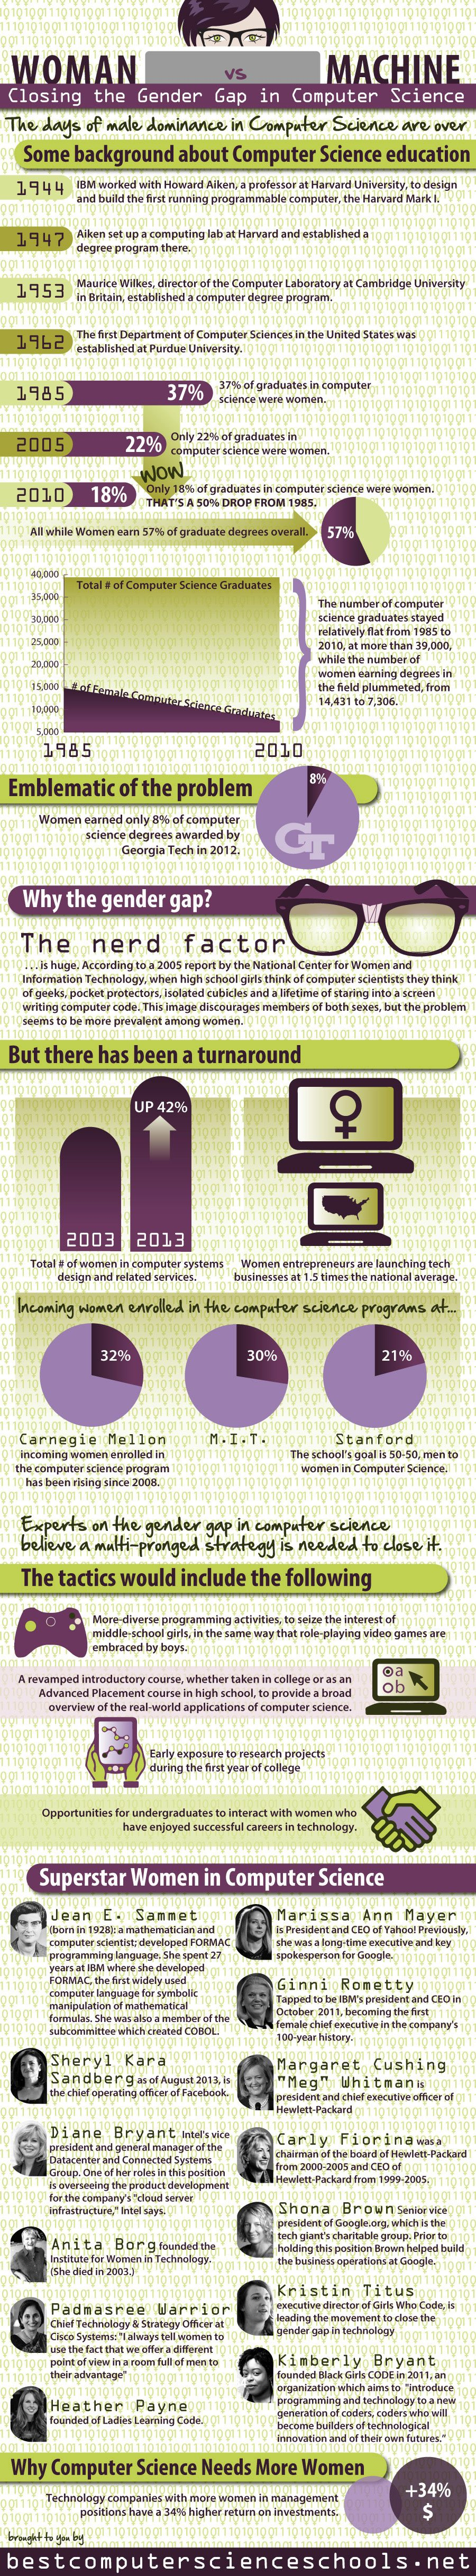 women-in-computer-science